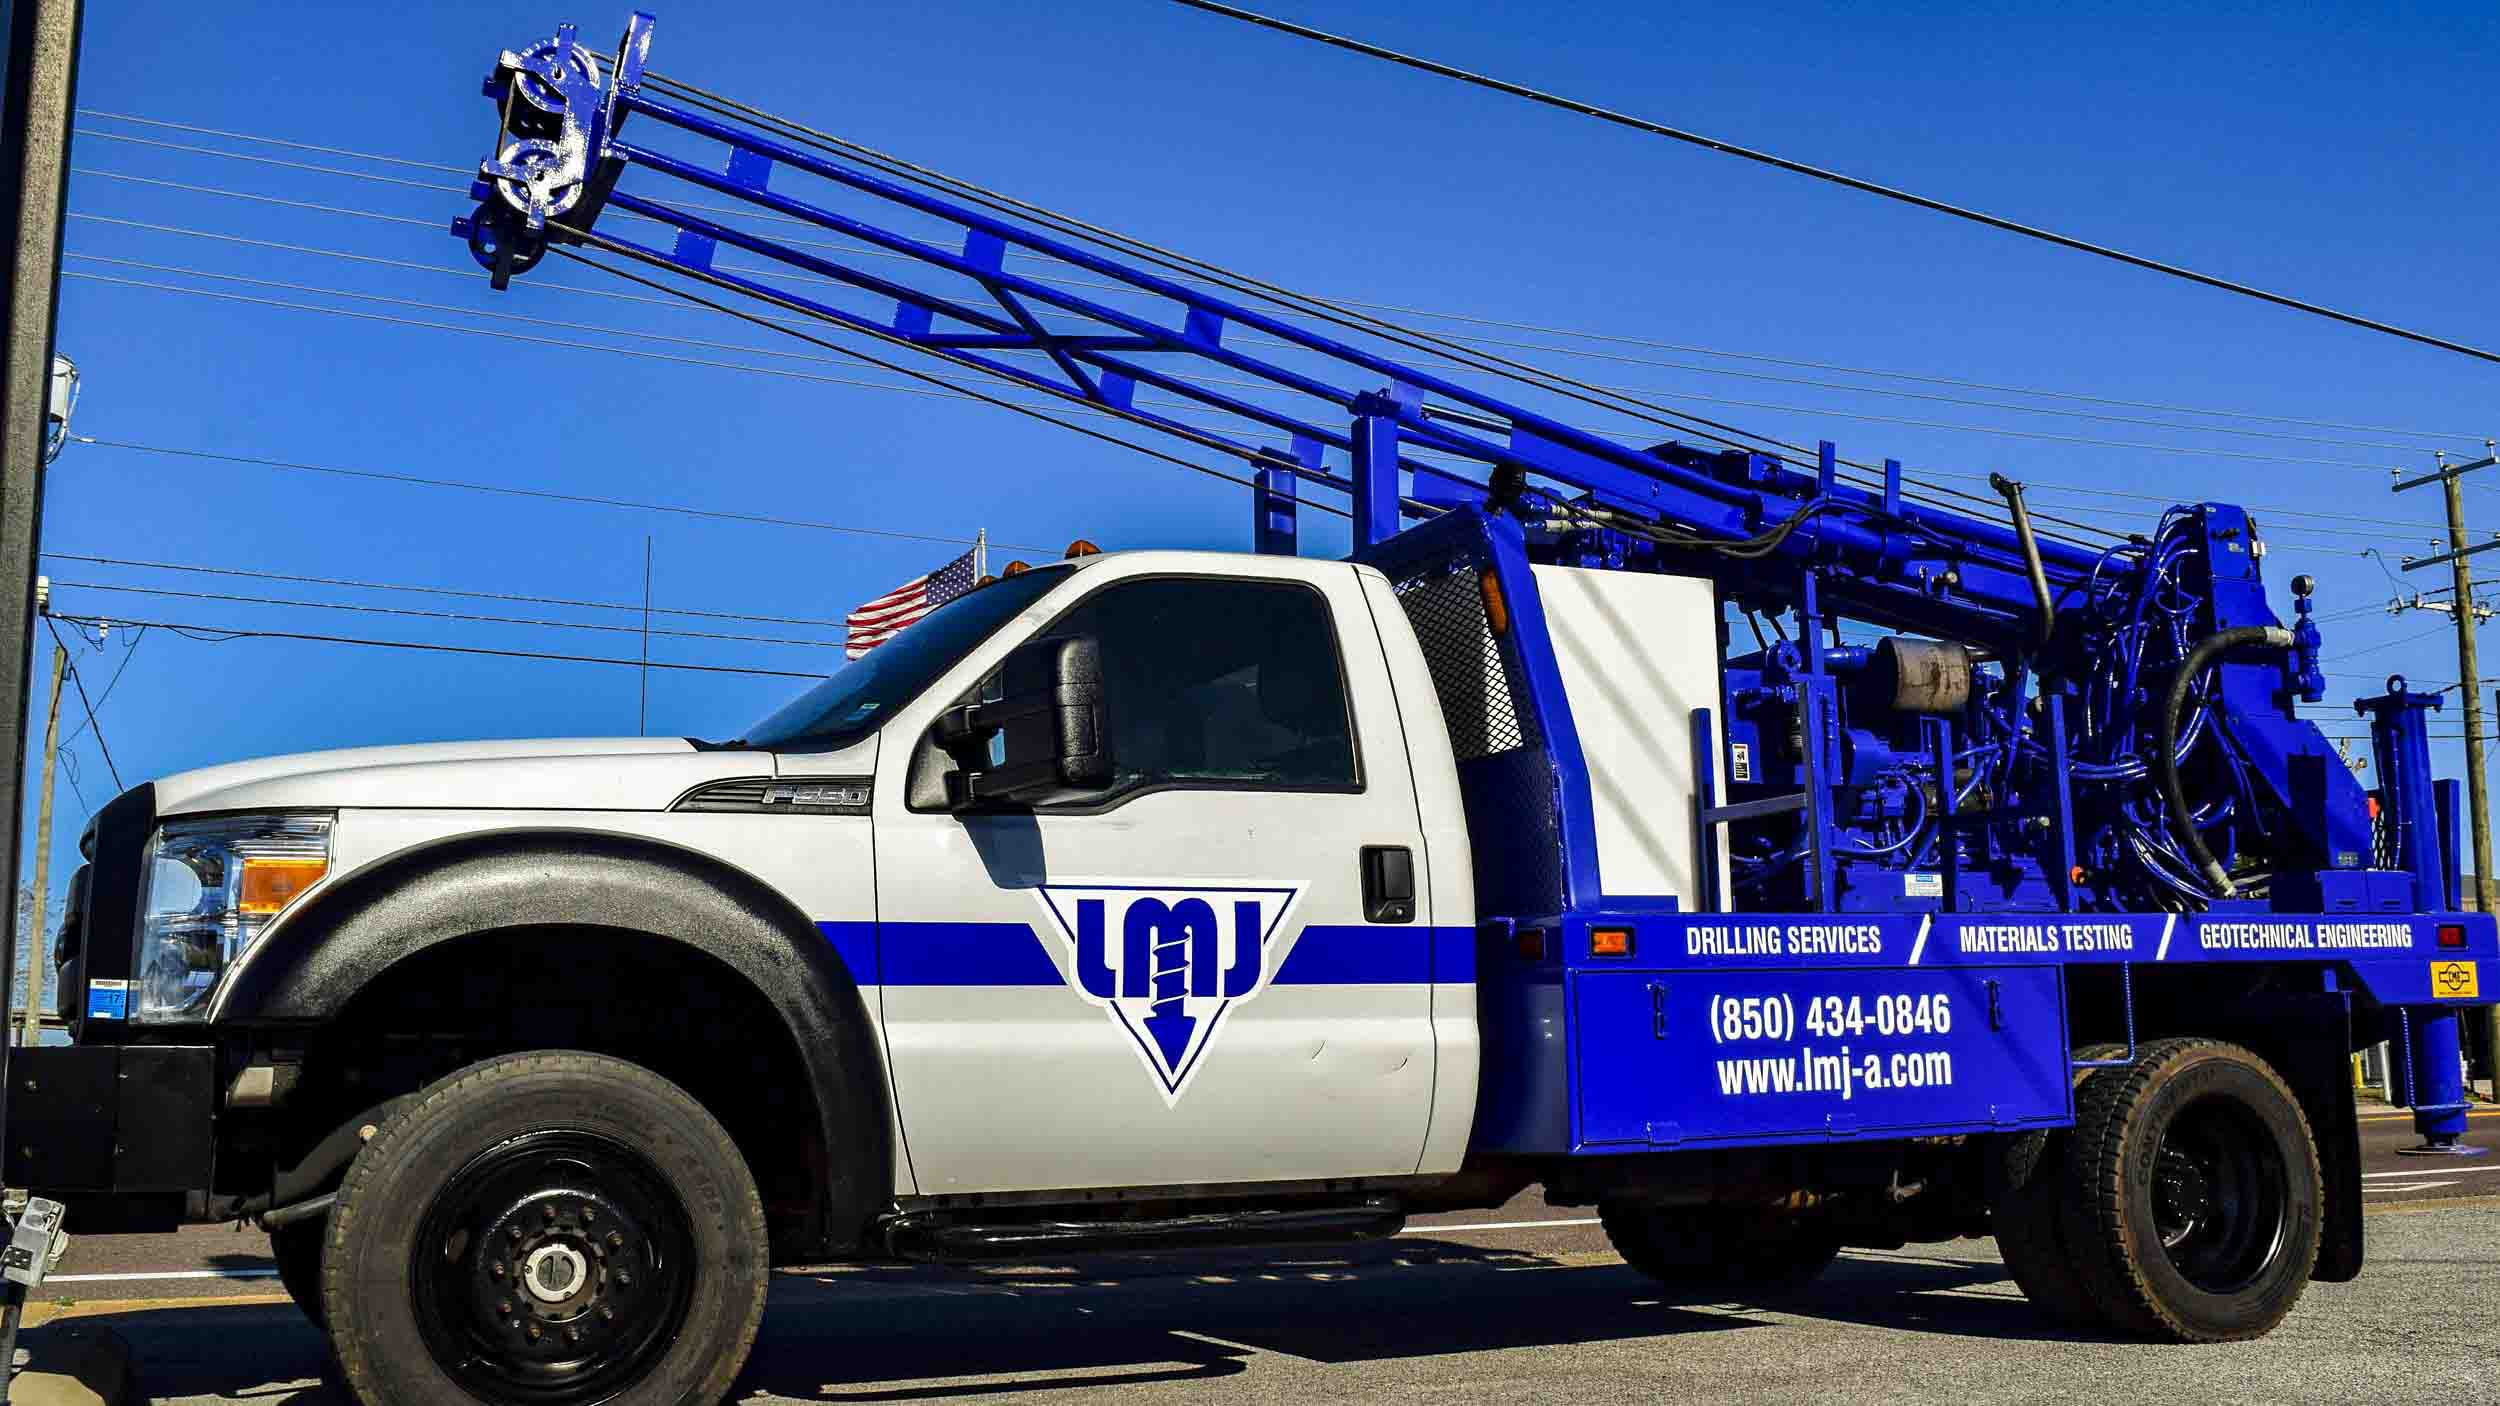 Pensacola Sign - Vehicle Graphics - Graphics for LMJ Engineering